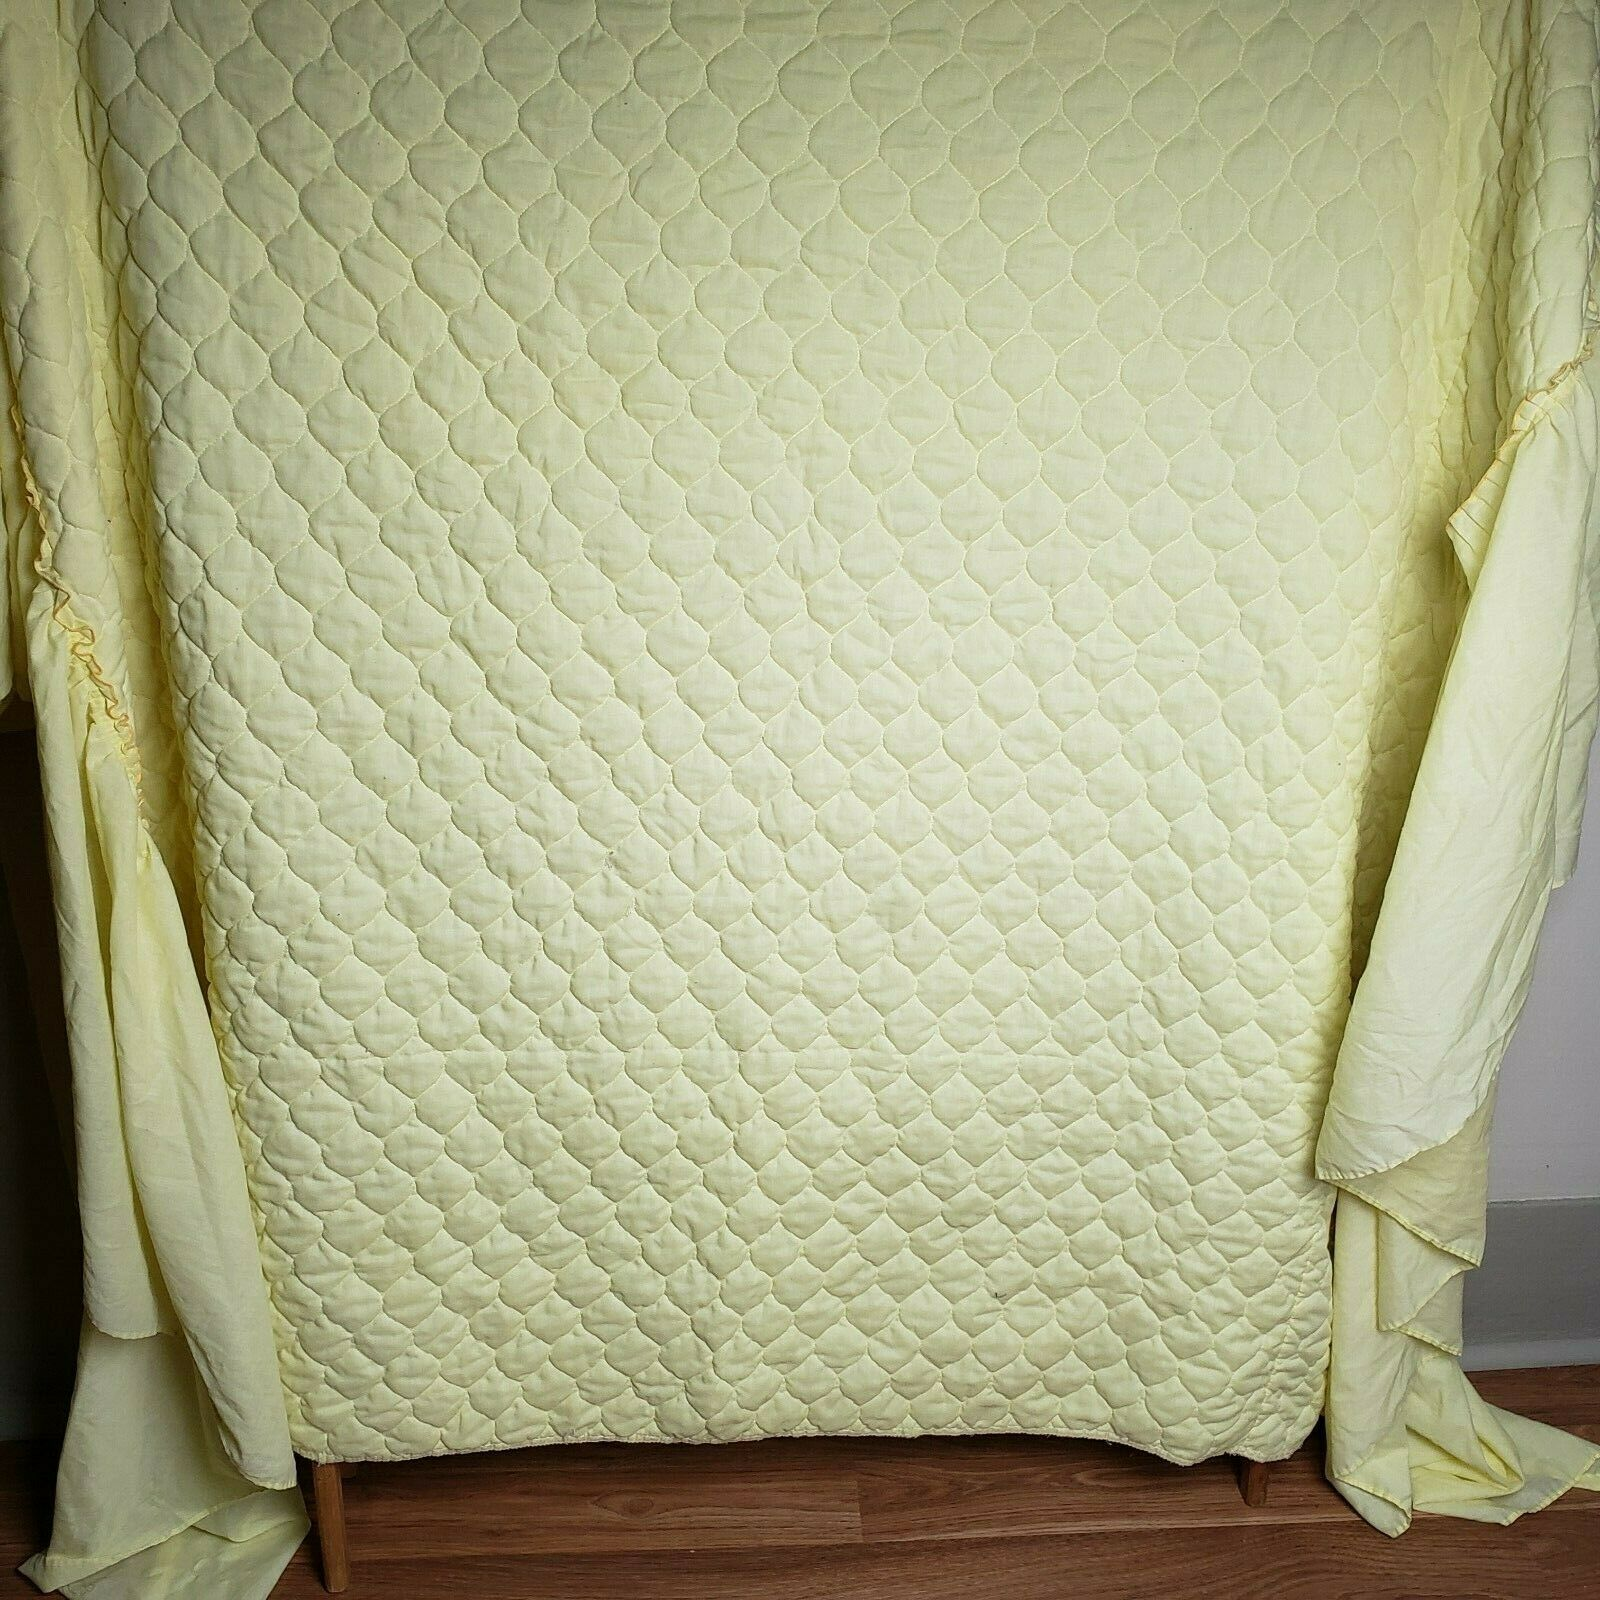 Vintage 70s Quilted Top Twin Bedspread Bed Cover Sunshine Gelb Built-in Skirt